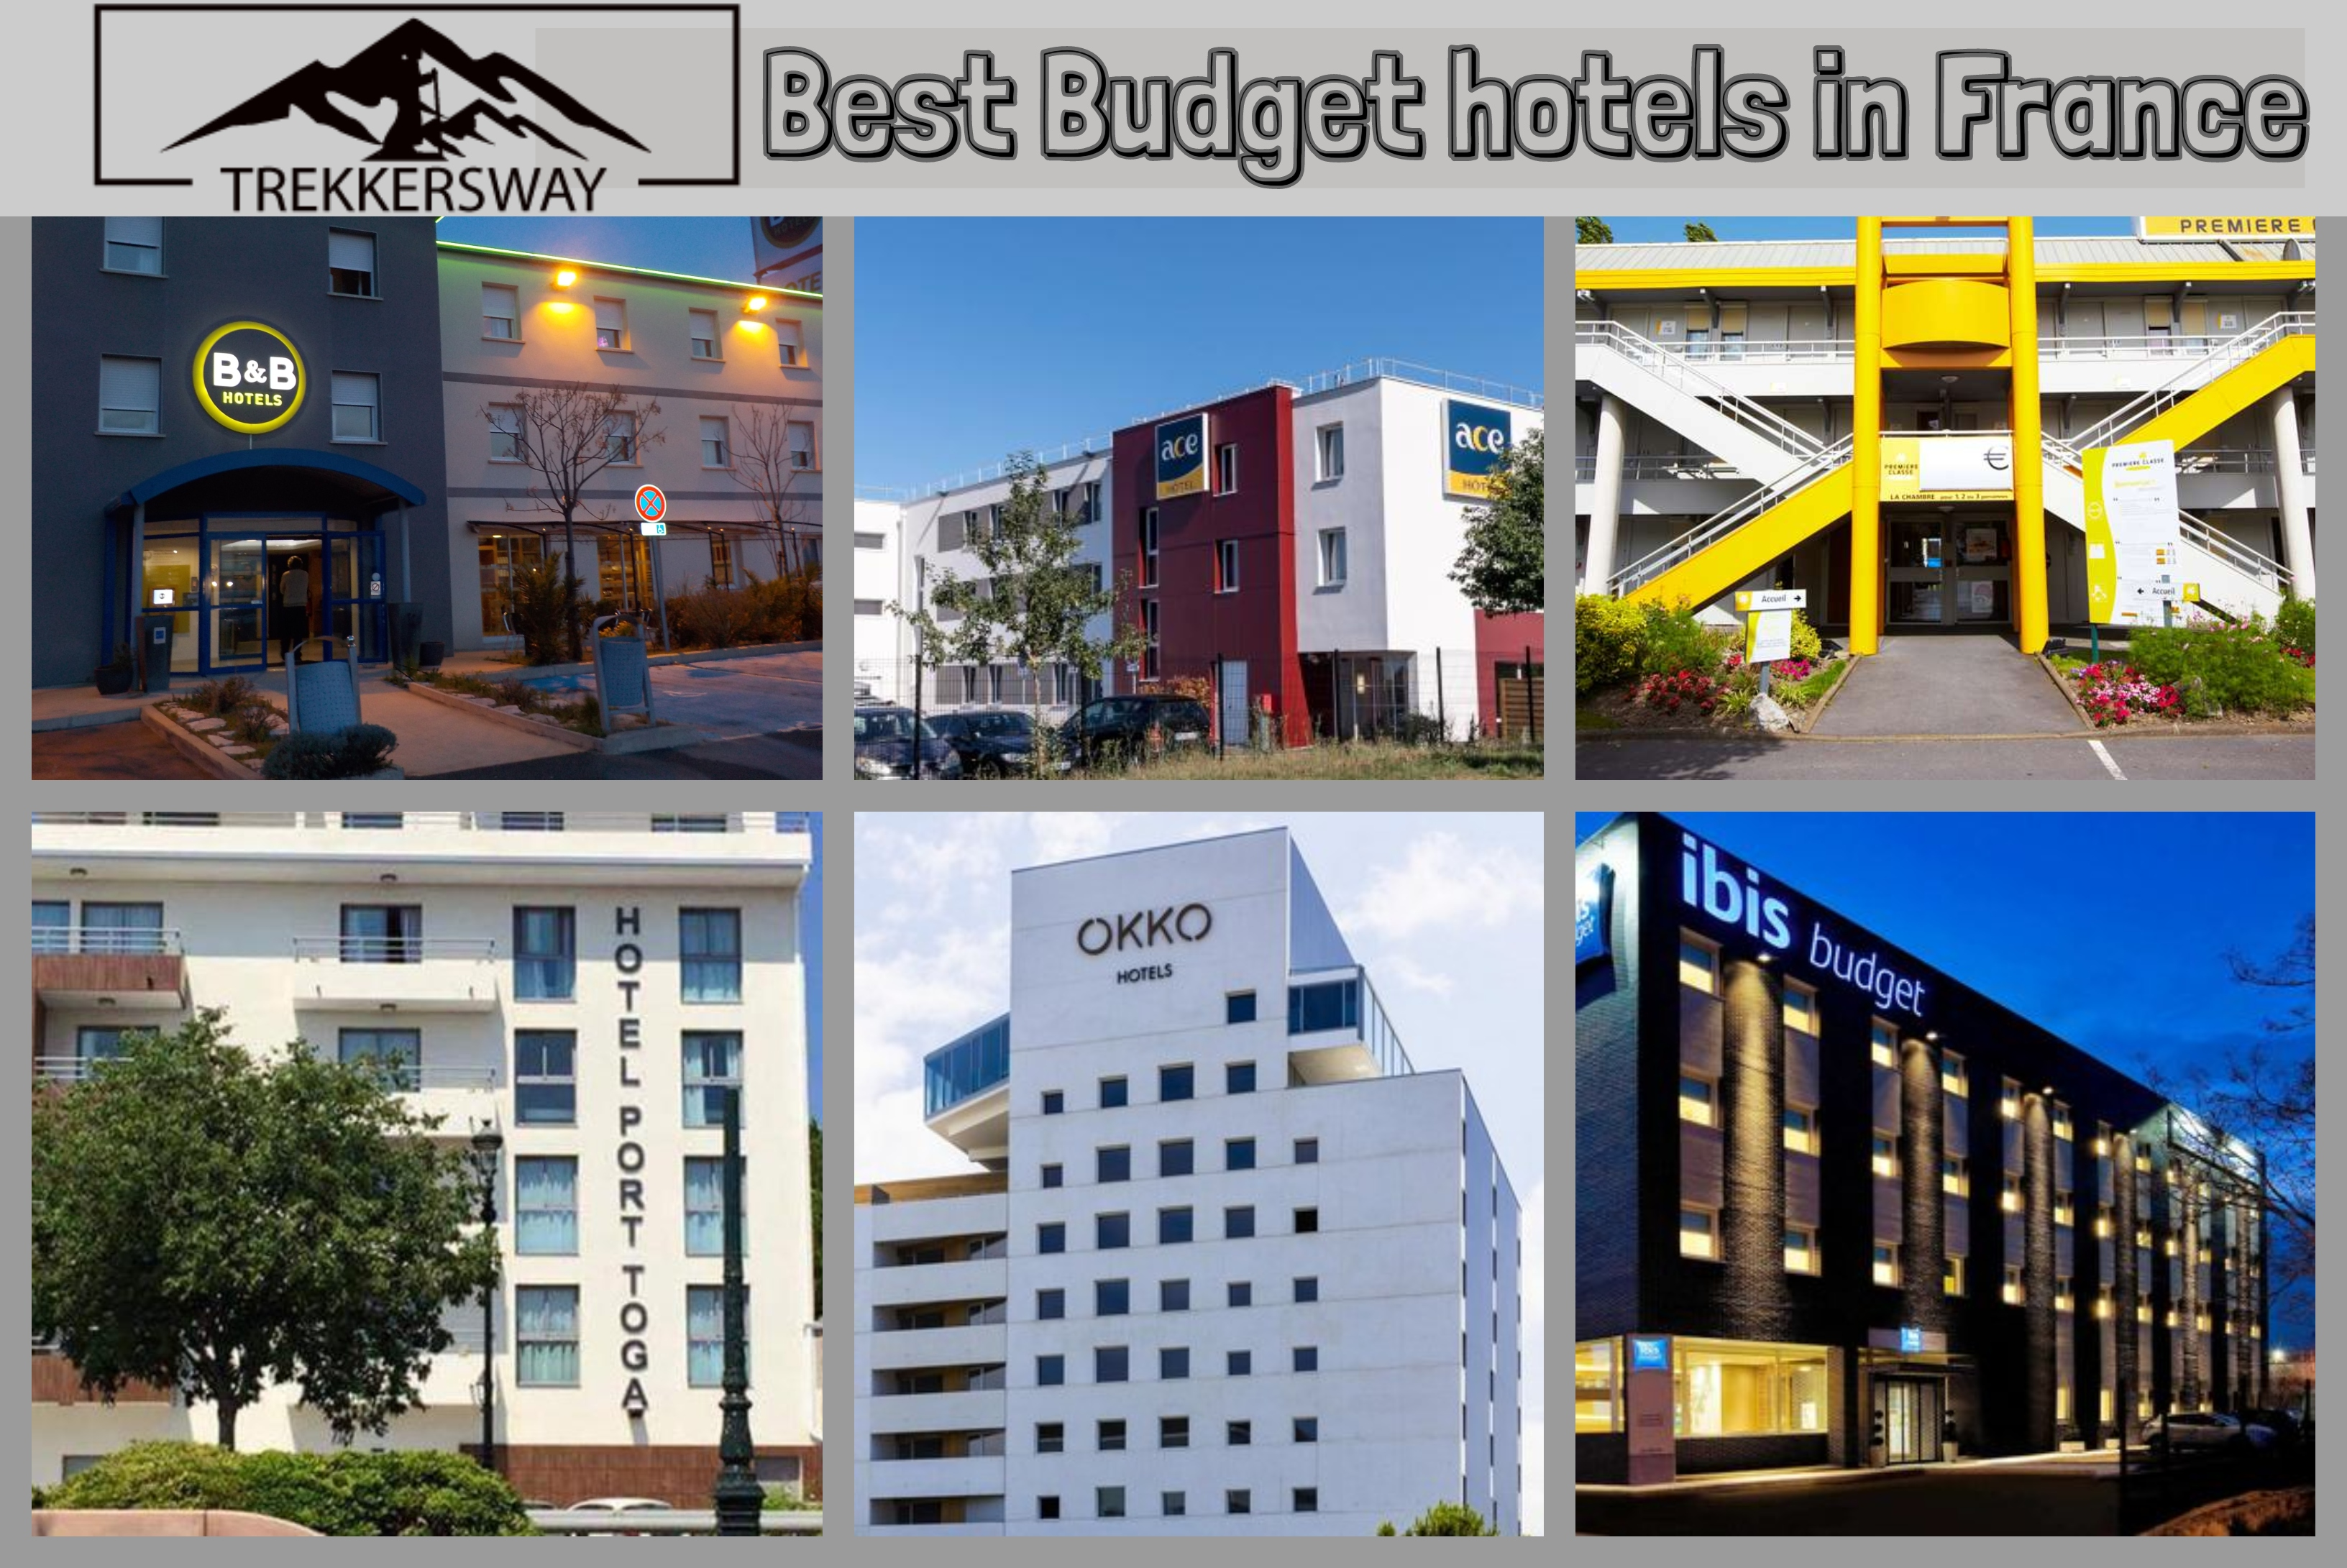 Best Budget hotels in France